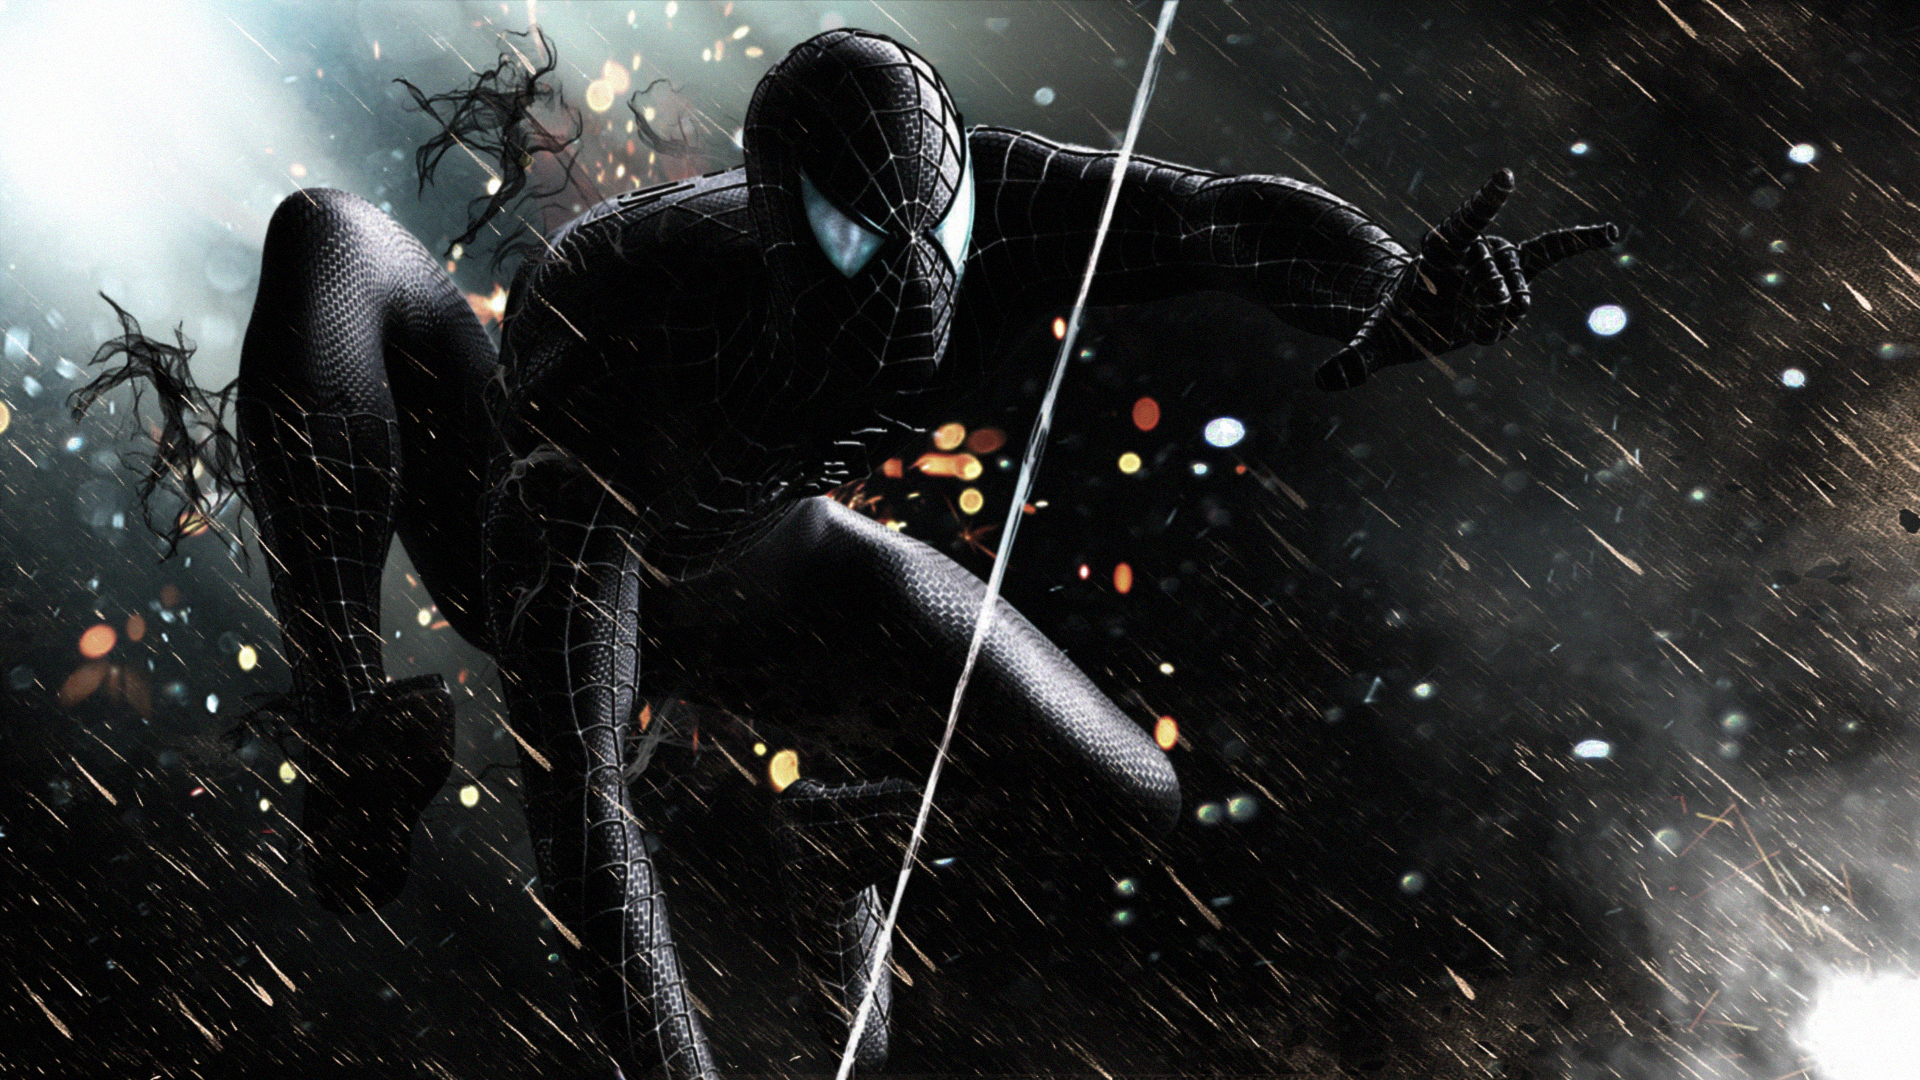 Black spiderman hd superheroes 4k wallpapers images - Black and white spiderman wallpaper ...